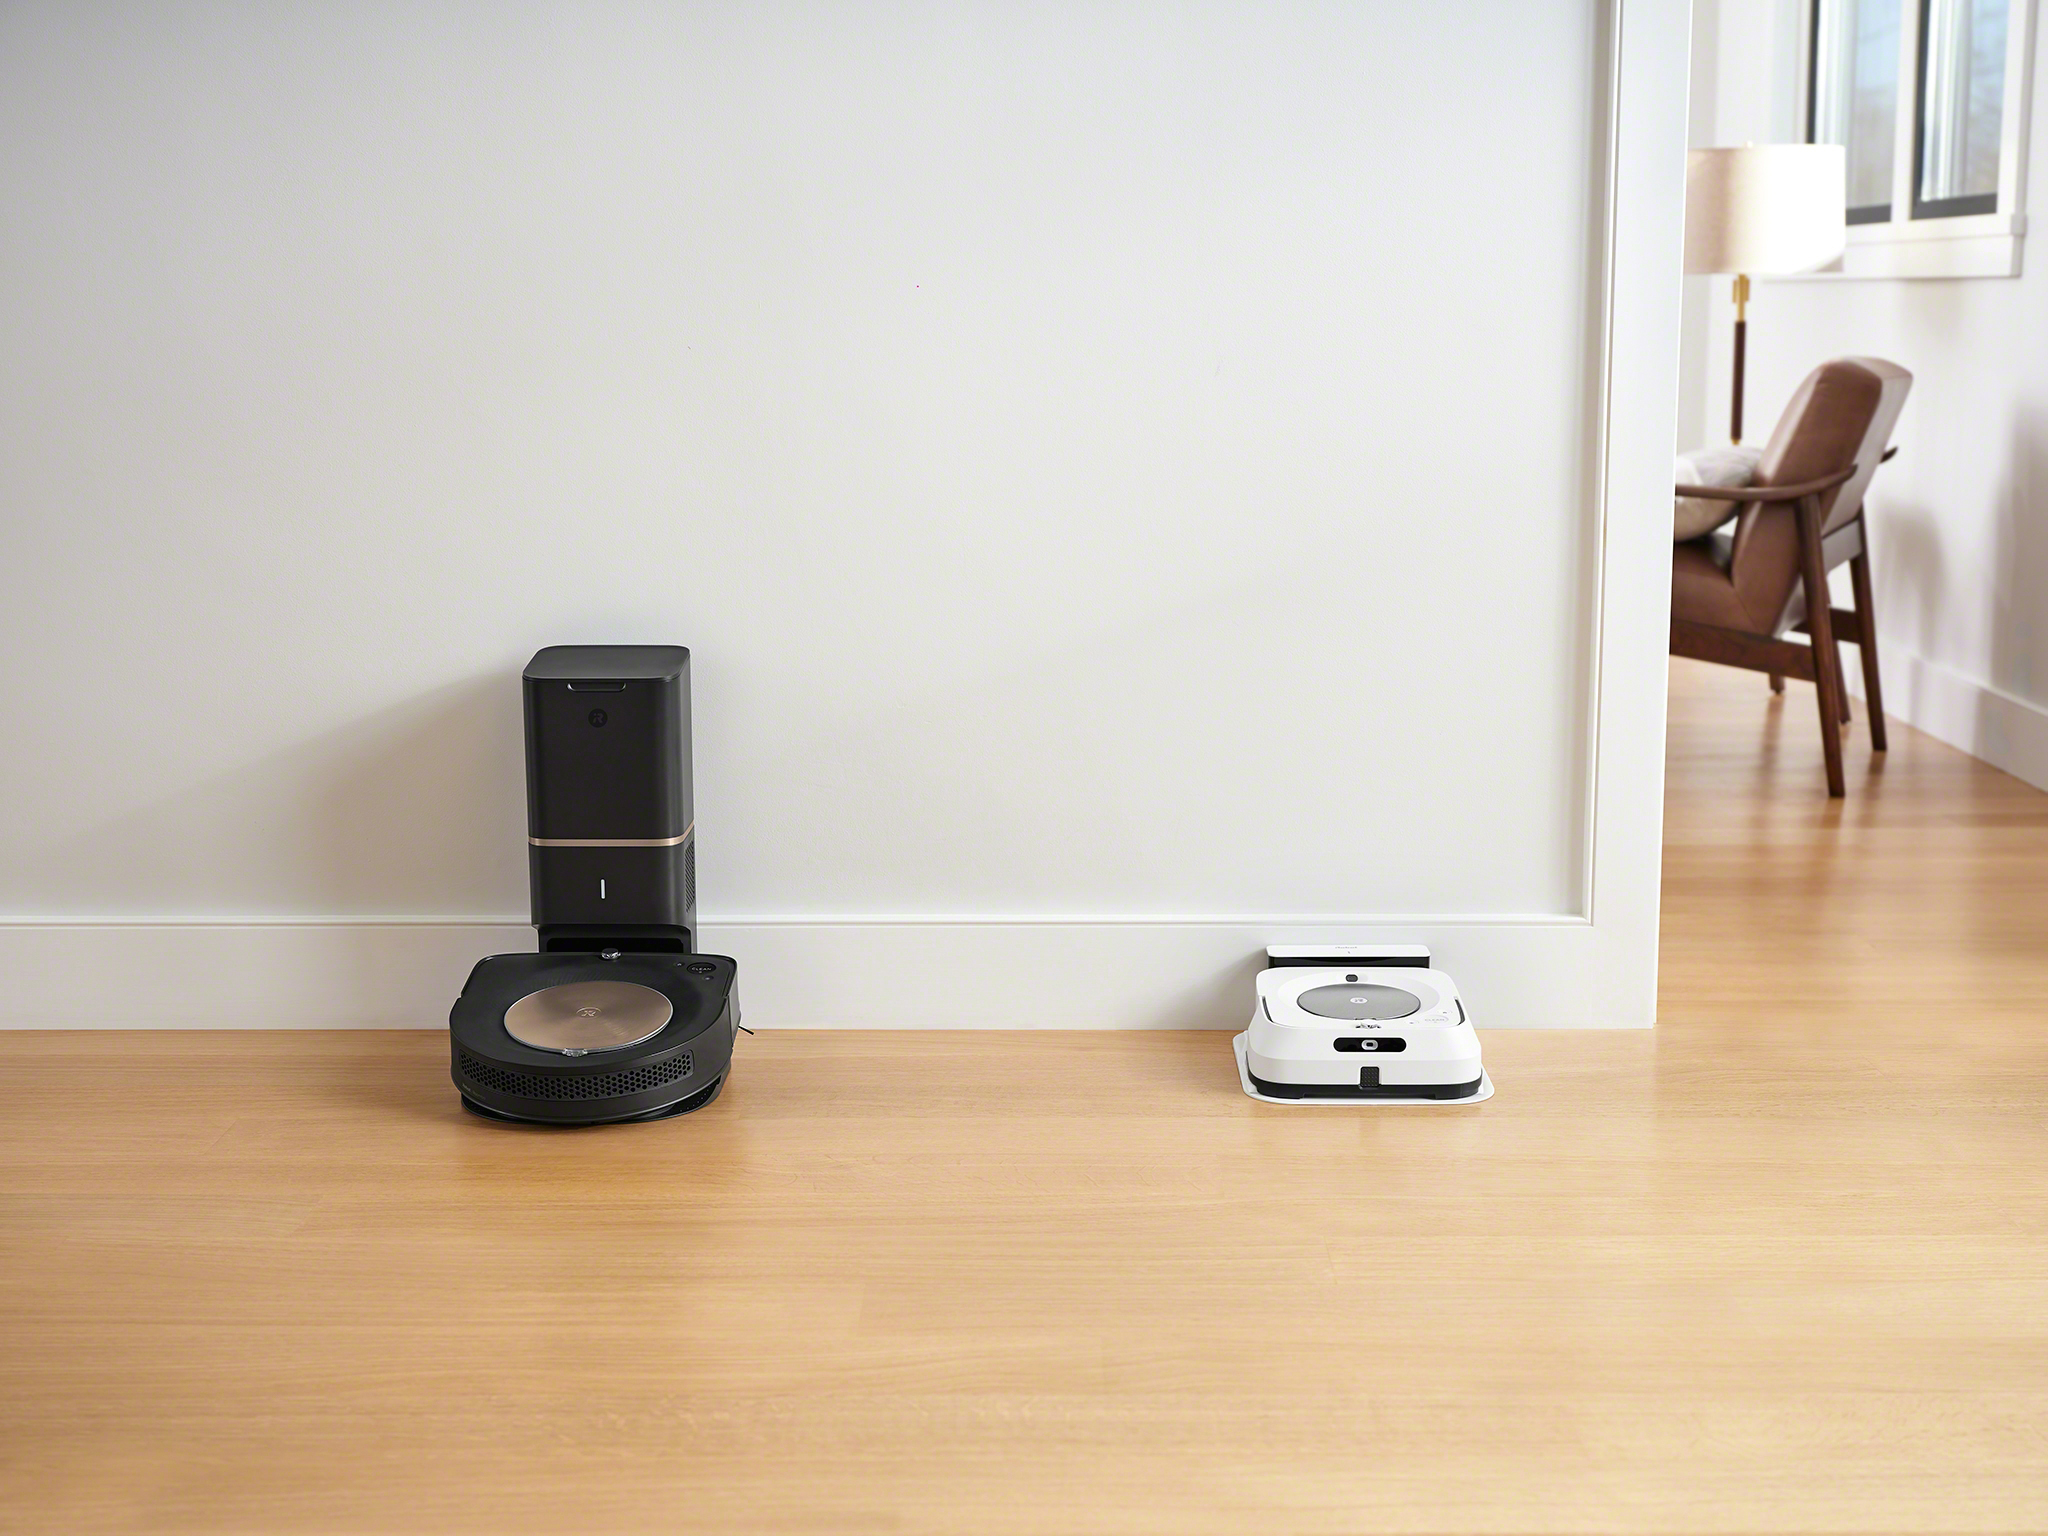 iRobot is launching two new powerful robots that work together to provide the deepest clean possible in the home. The Roomba® s9+ robot vacuum with Clean Base™ Automatic Dirt Disposal sports a sleek Maximized-Edge design and is the most intelligent, powerful, and deepest cleaning Roomba® robot to date. The Braava jet® m6 robot mop tackles multiple rooms and large spaces with advanced navigation and mapping capabilities. Together, the two robots can use Imprint™ Link Technology to talk to each other, automatically vacuuming and then mopping, without any effort from the user.